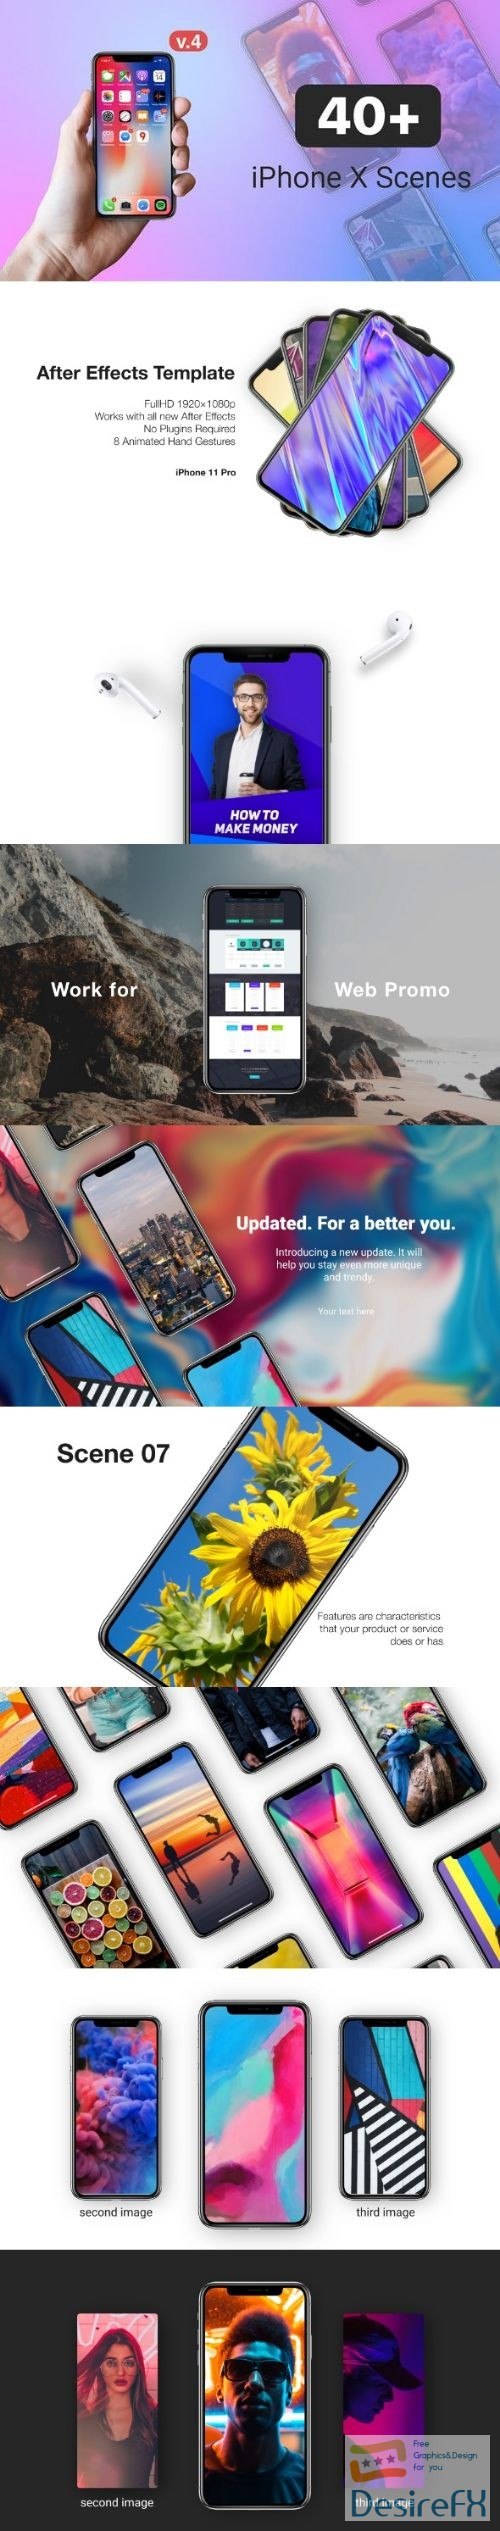 after-effects-projects - Videohive Phone X - 11 Pro // App Promo Kit 20716659